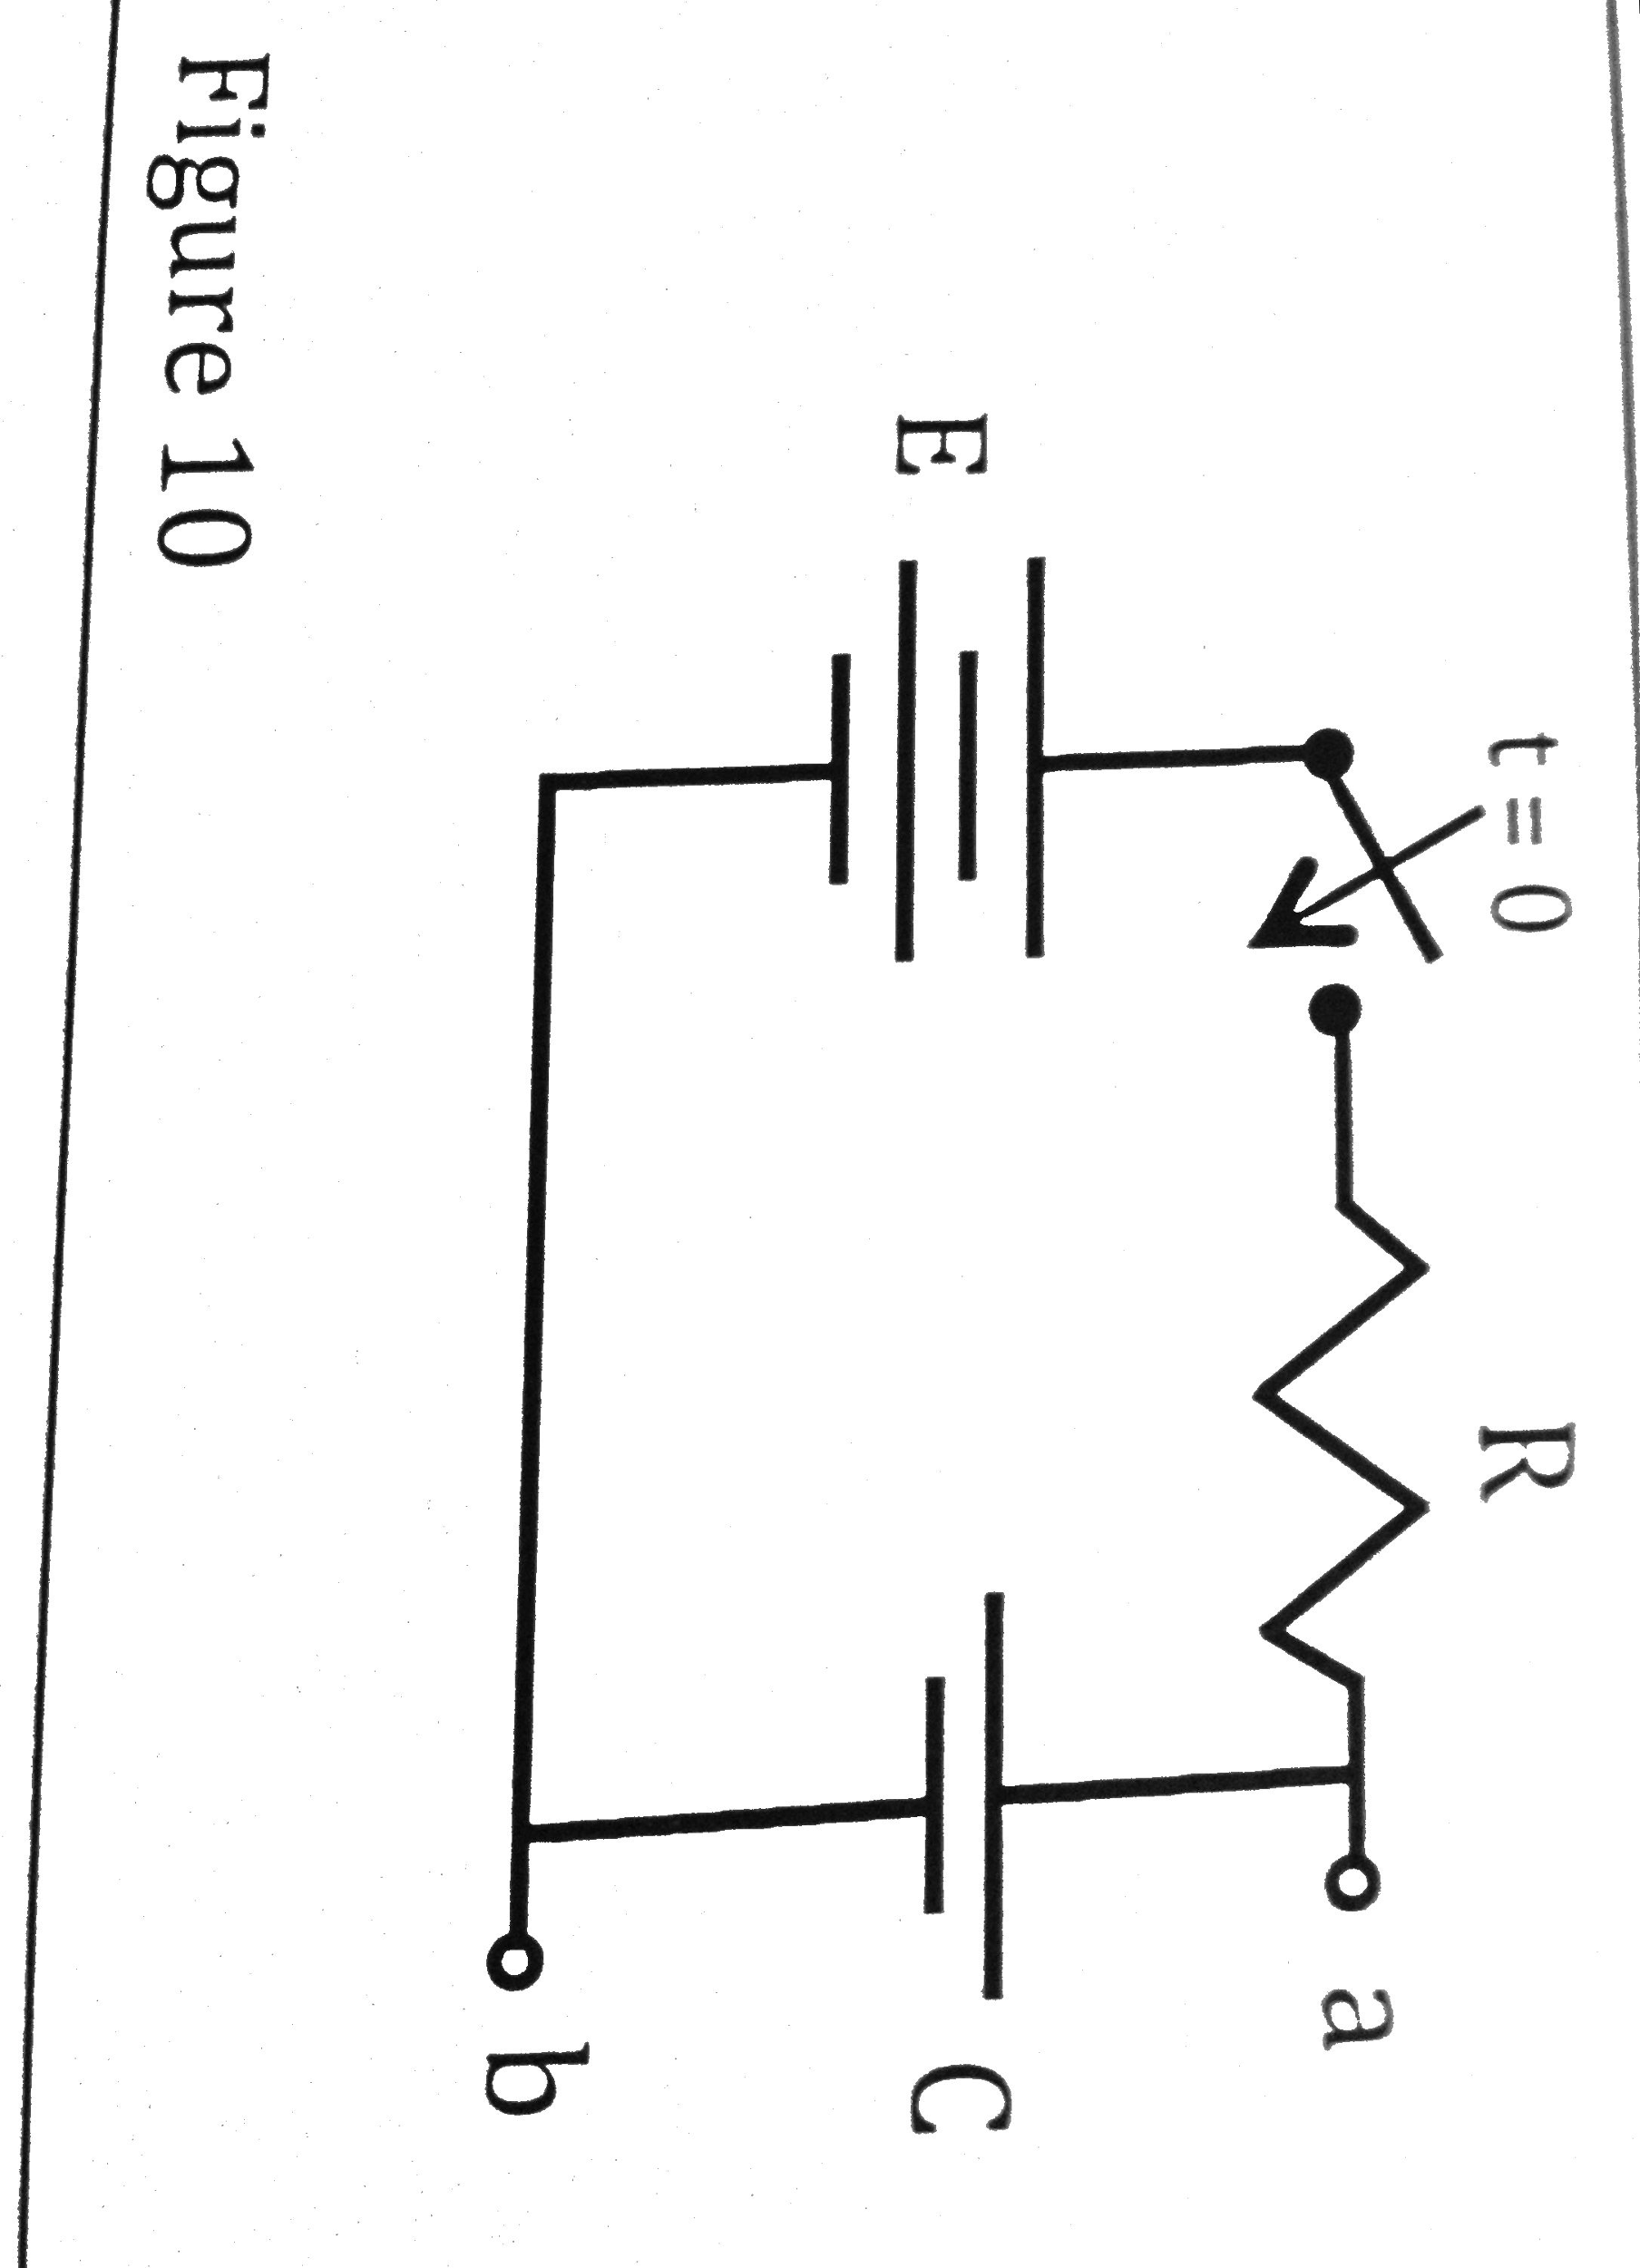 In figure 10, E = +10V and R=2 Ohms. C = 3C and vc